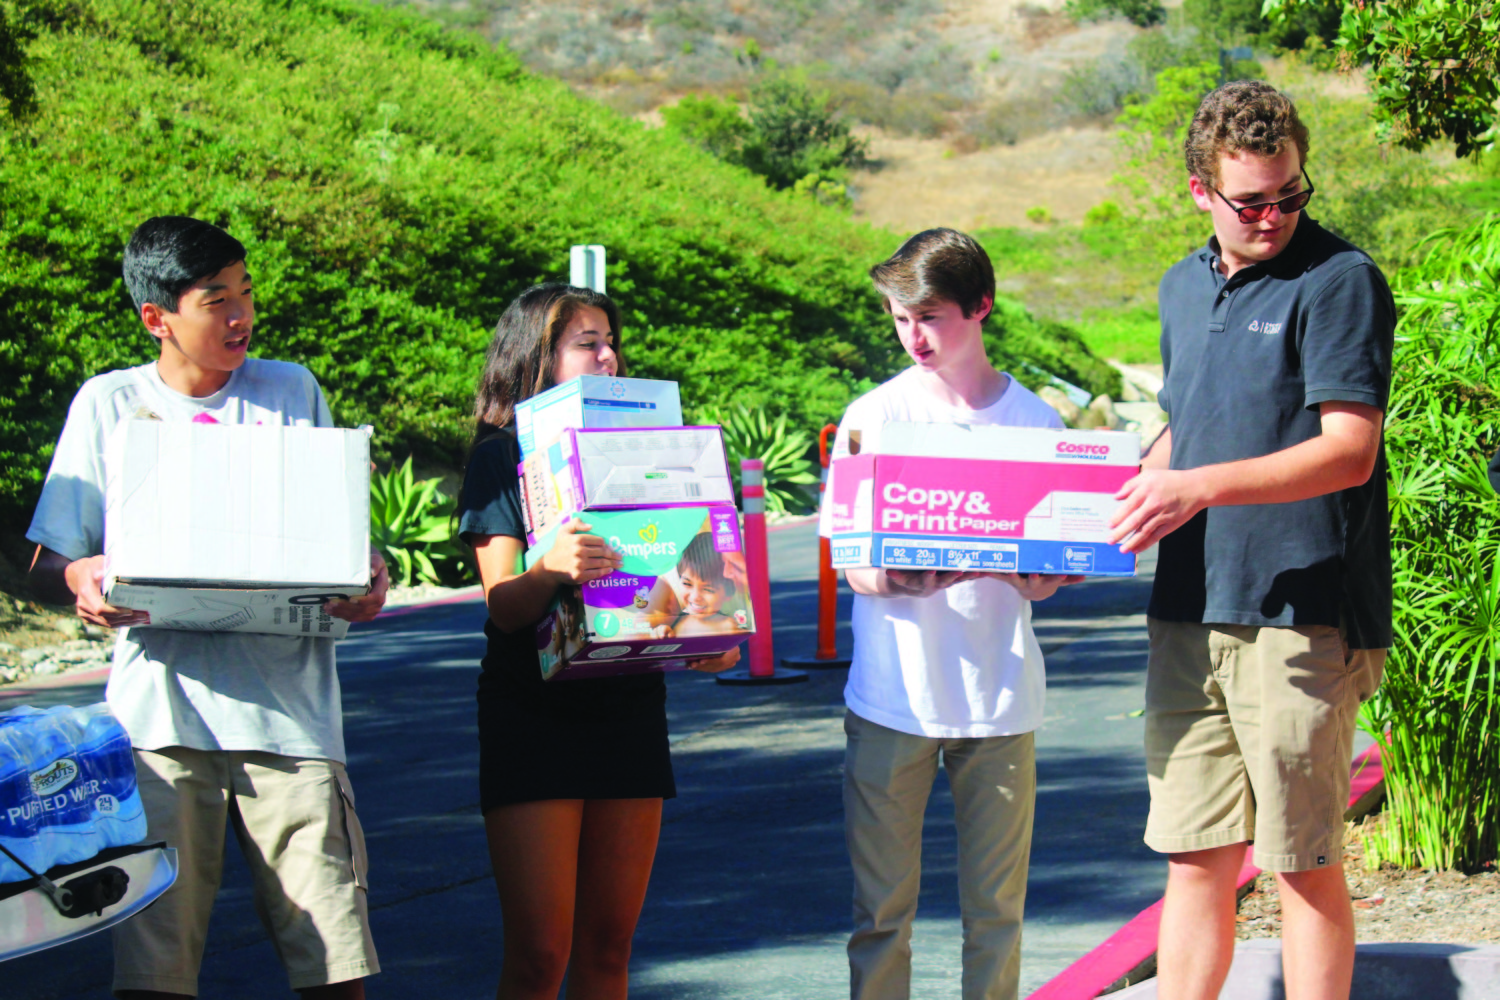 Student spearheads Puerto Rico relief drive